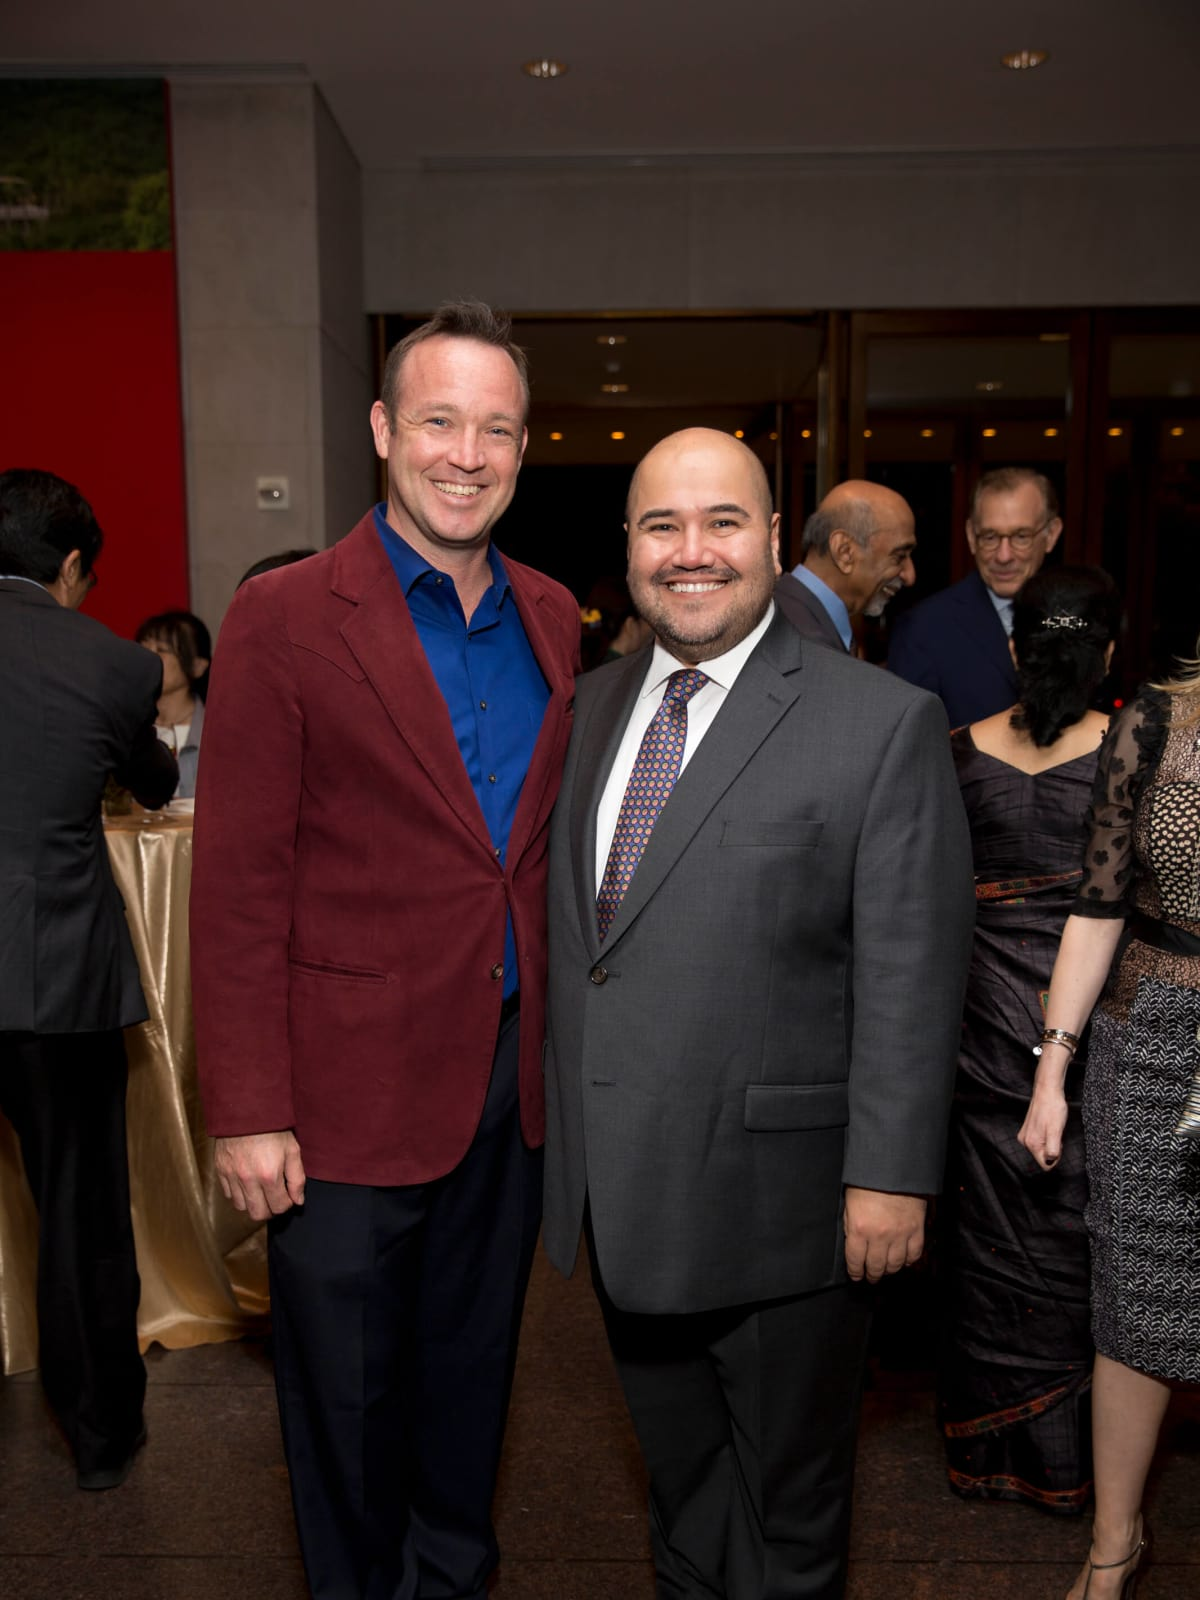 MFAH Emperors Treasures dinner, Charlie Cole, Terence O'Neill